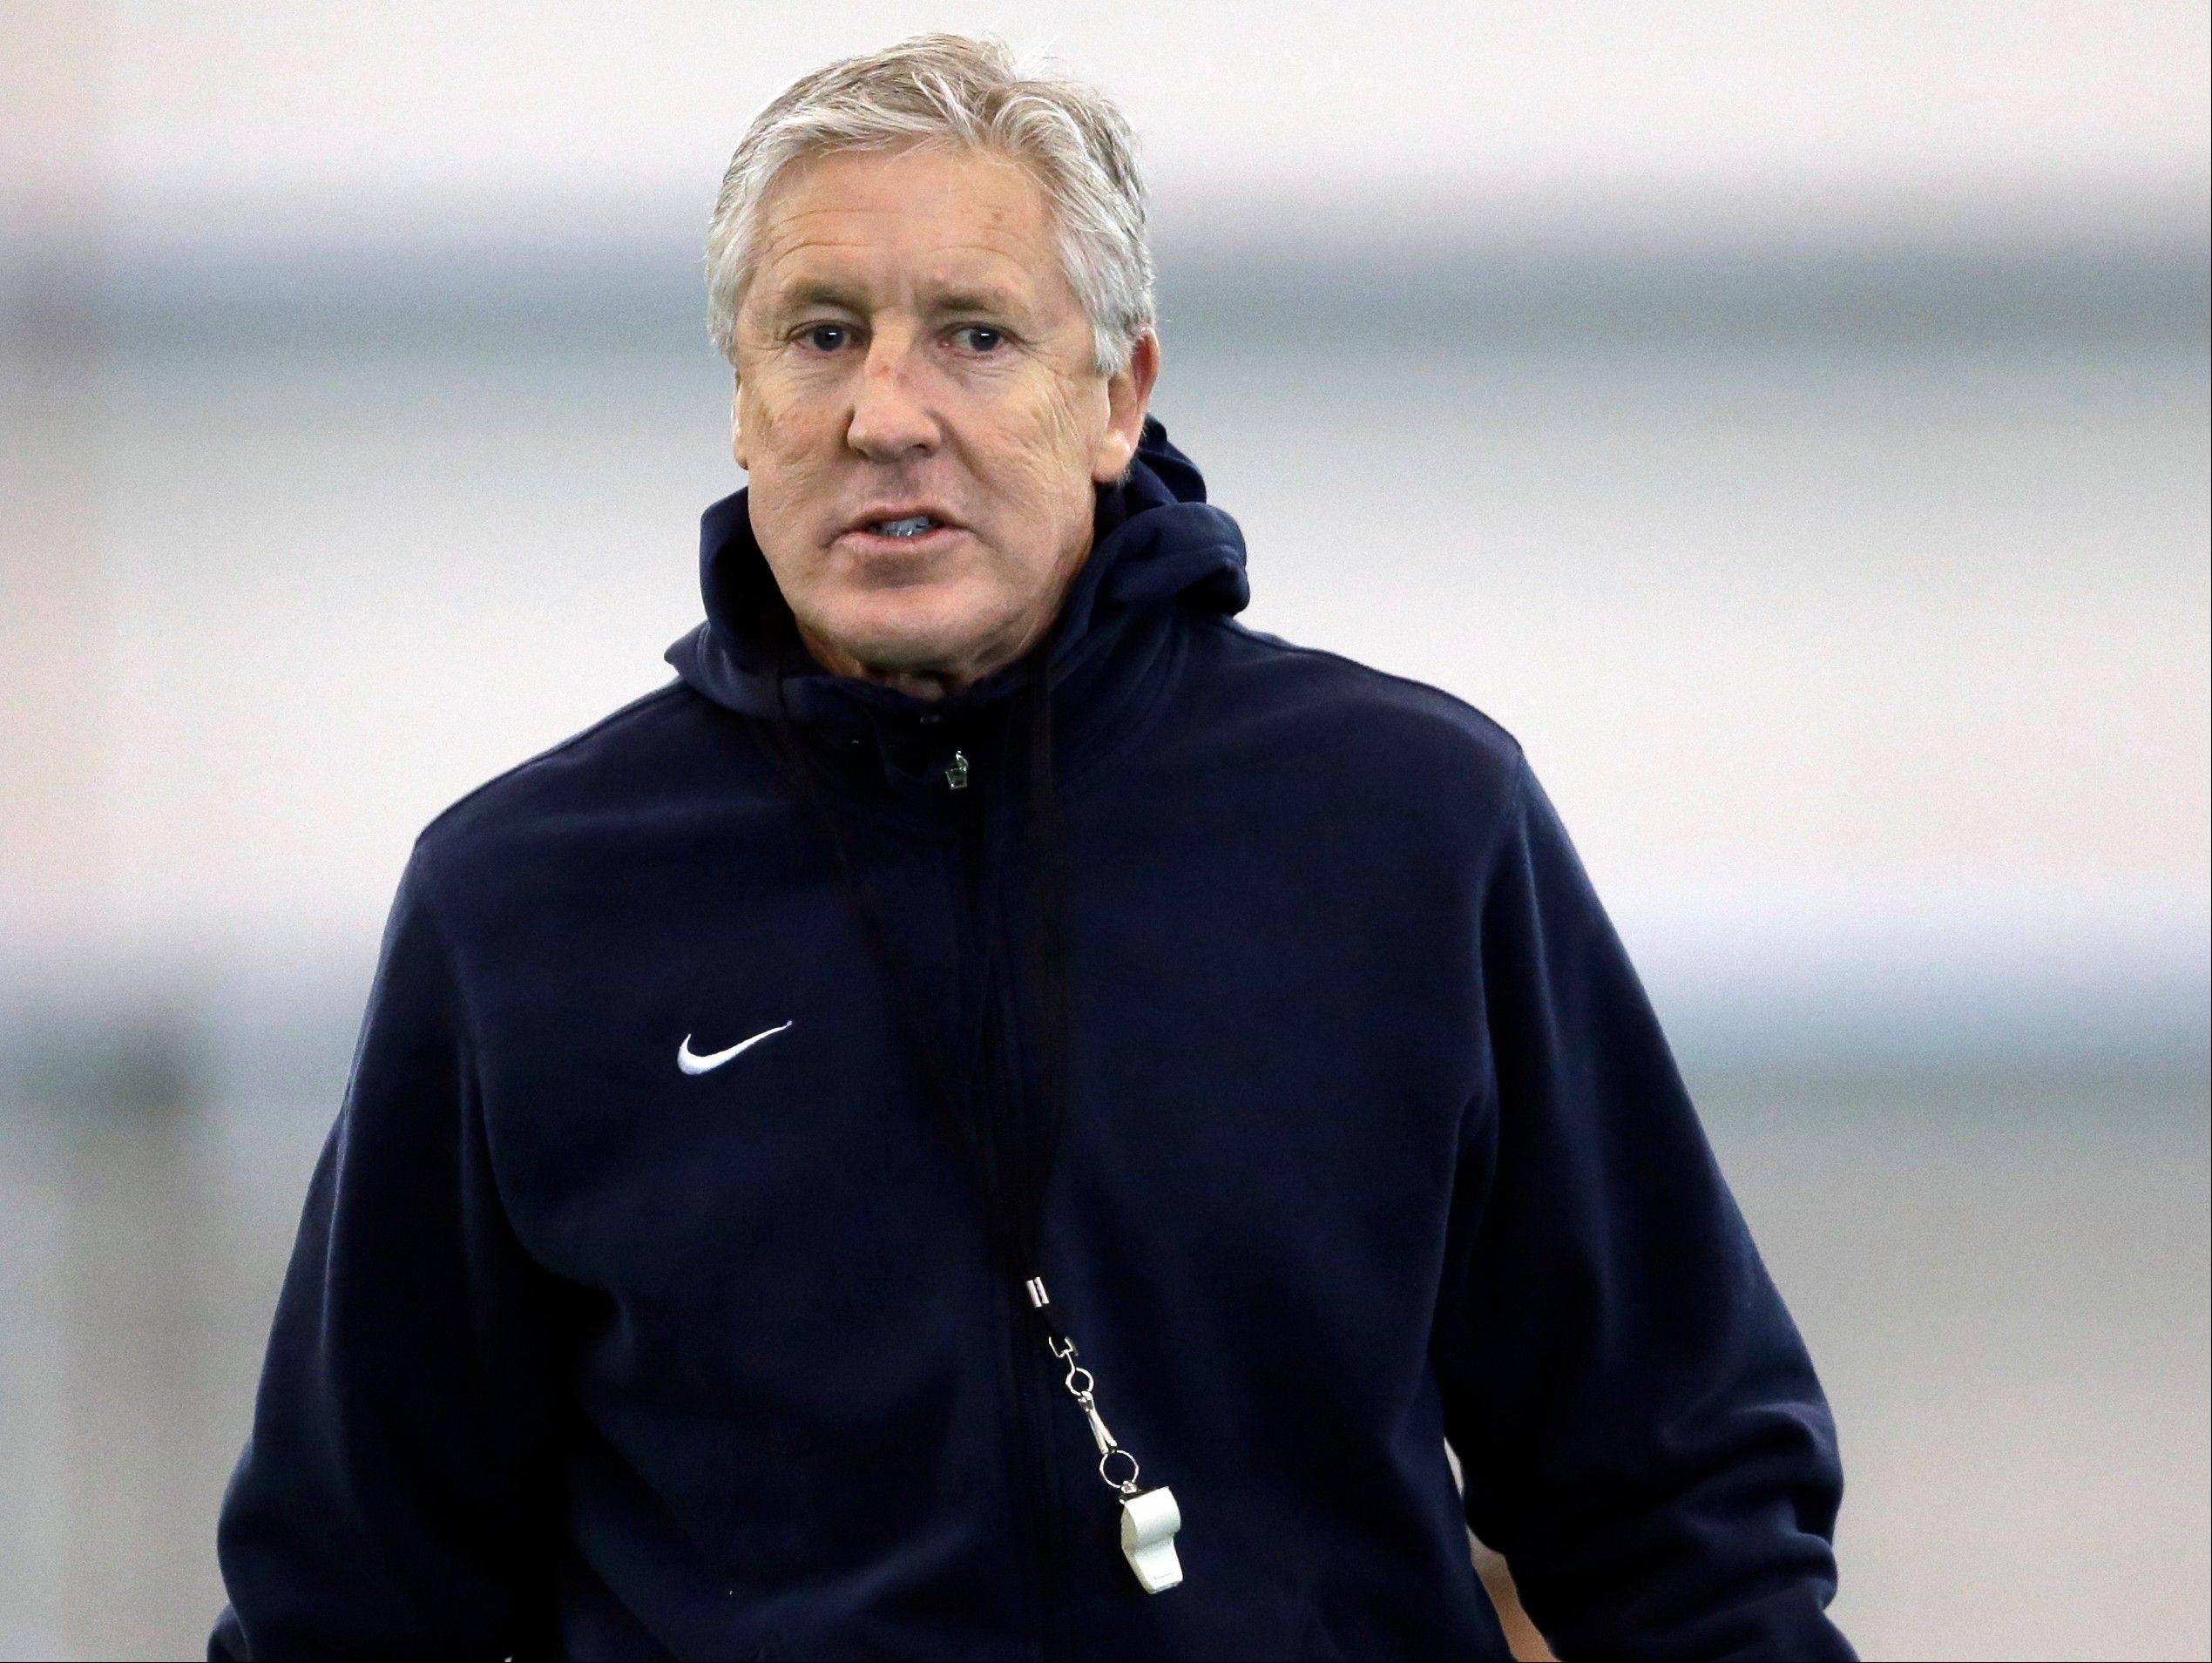 Seattle Seahawks head coach Pete Carroll watches his team warm up for NFL football practice Wednesday, Jan. 29, 2014, in East Rutherford, N.J. The Seahawks and the Denver Broncos are scheduled to play in the Super Bowl XLVIII football game Sunday, Feb. 2, 2014.